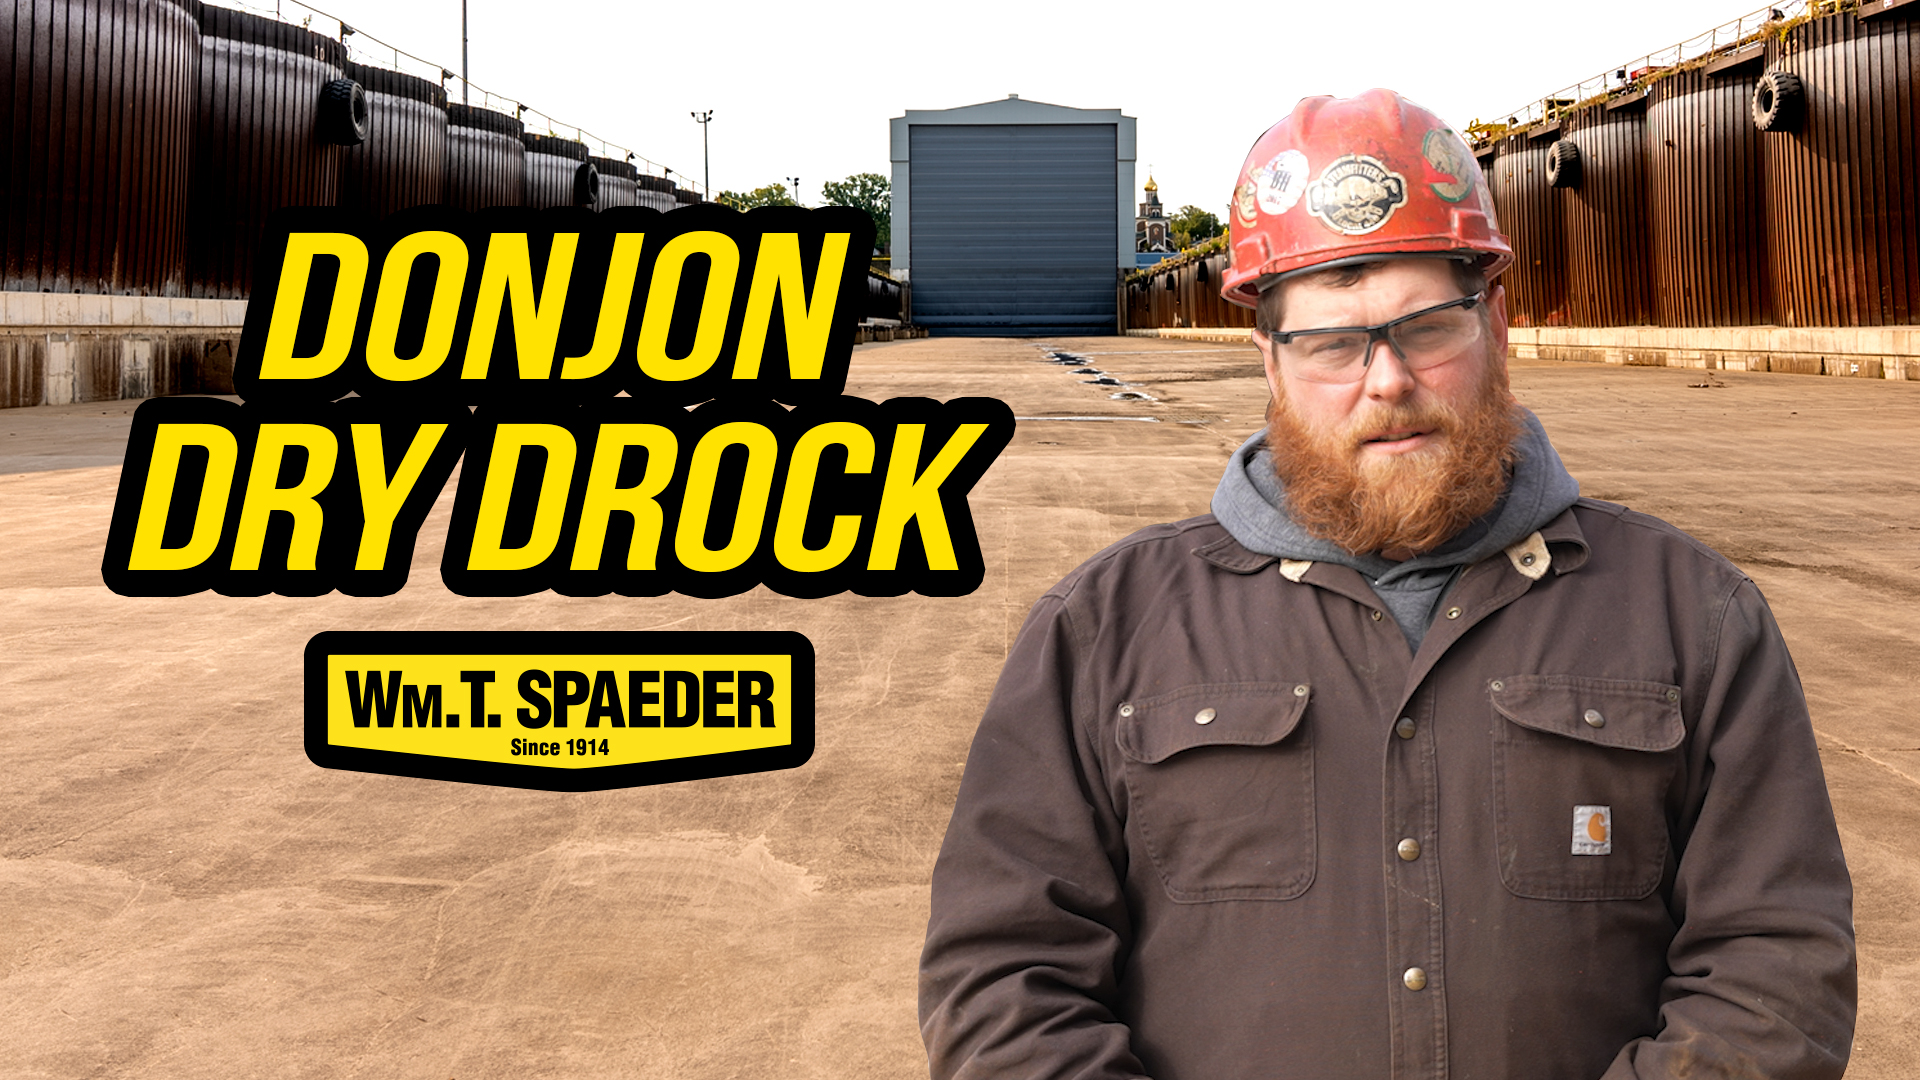 Project Showcase: Donjon Dry Dock